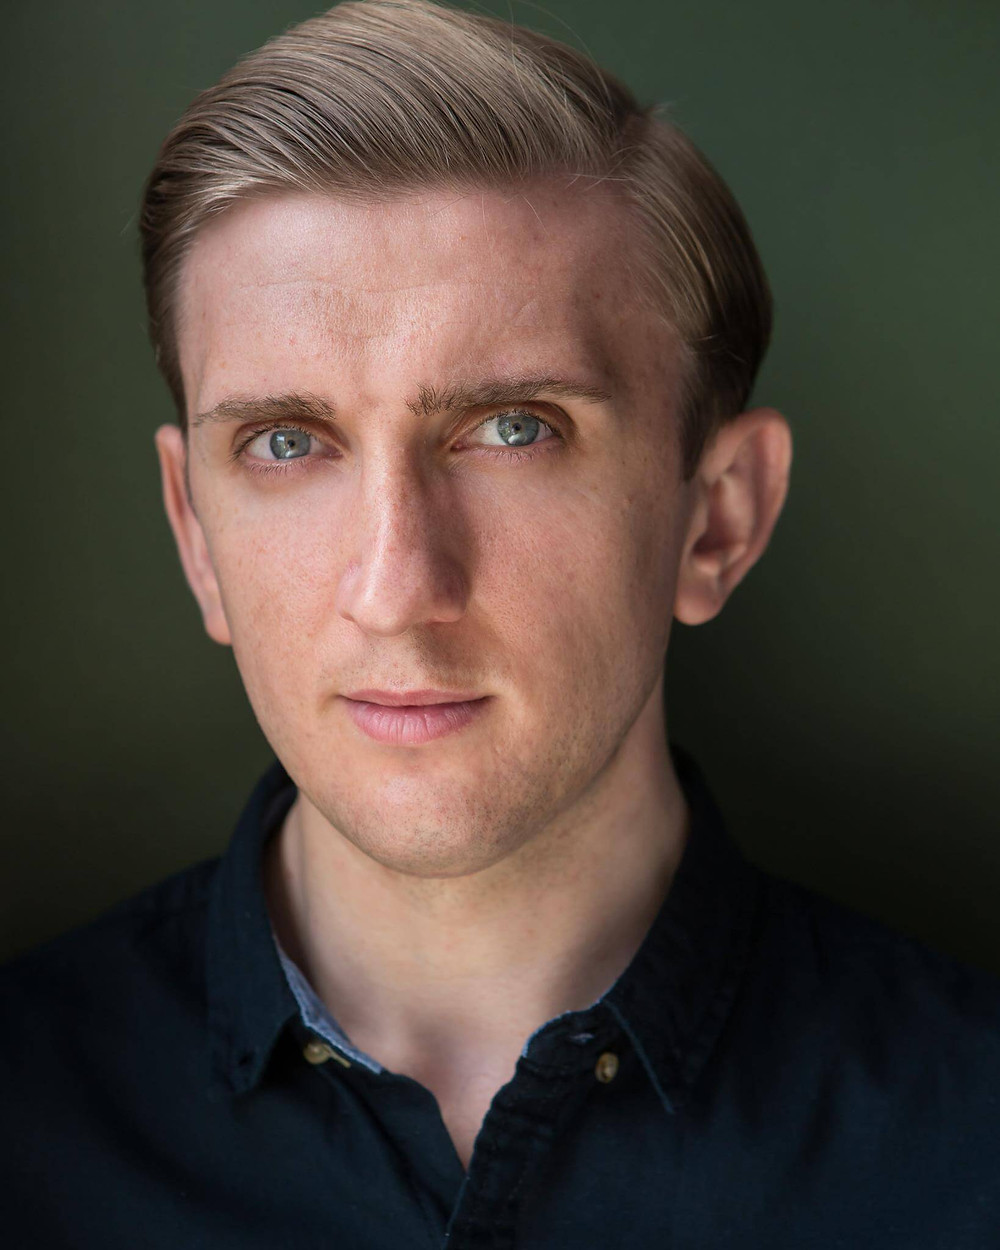 Headshot of actor Philip Shaun McGuinness